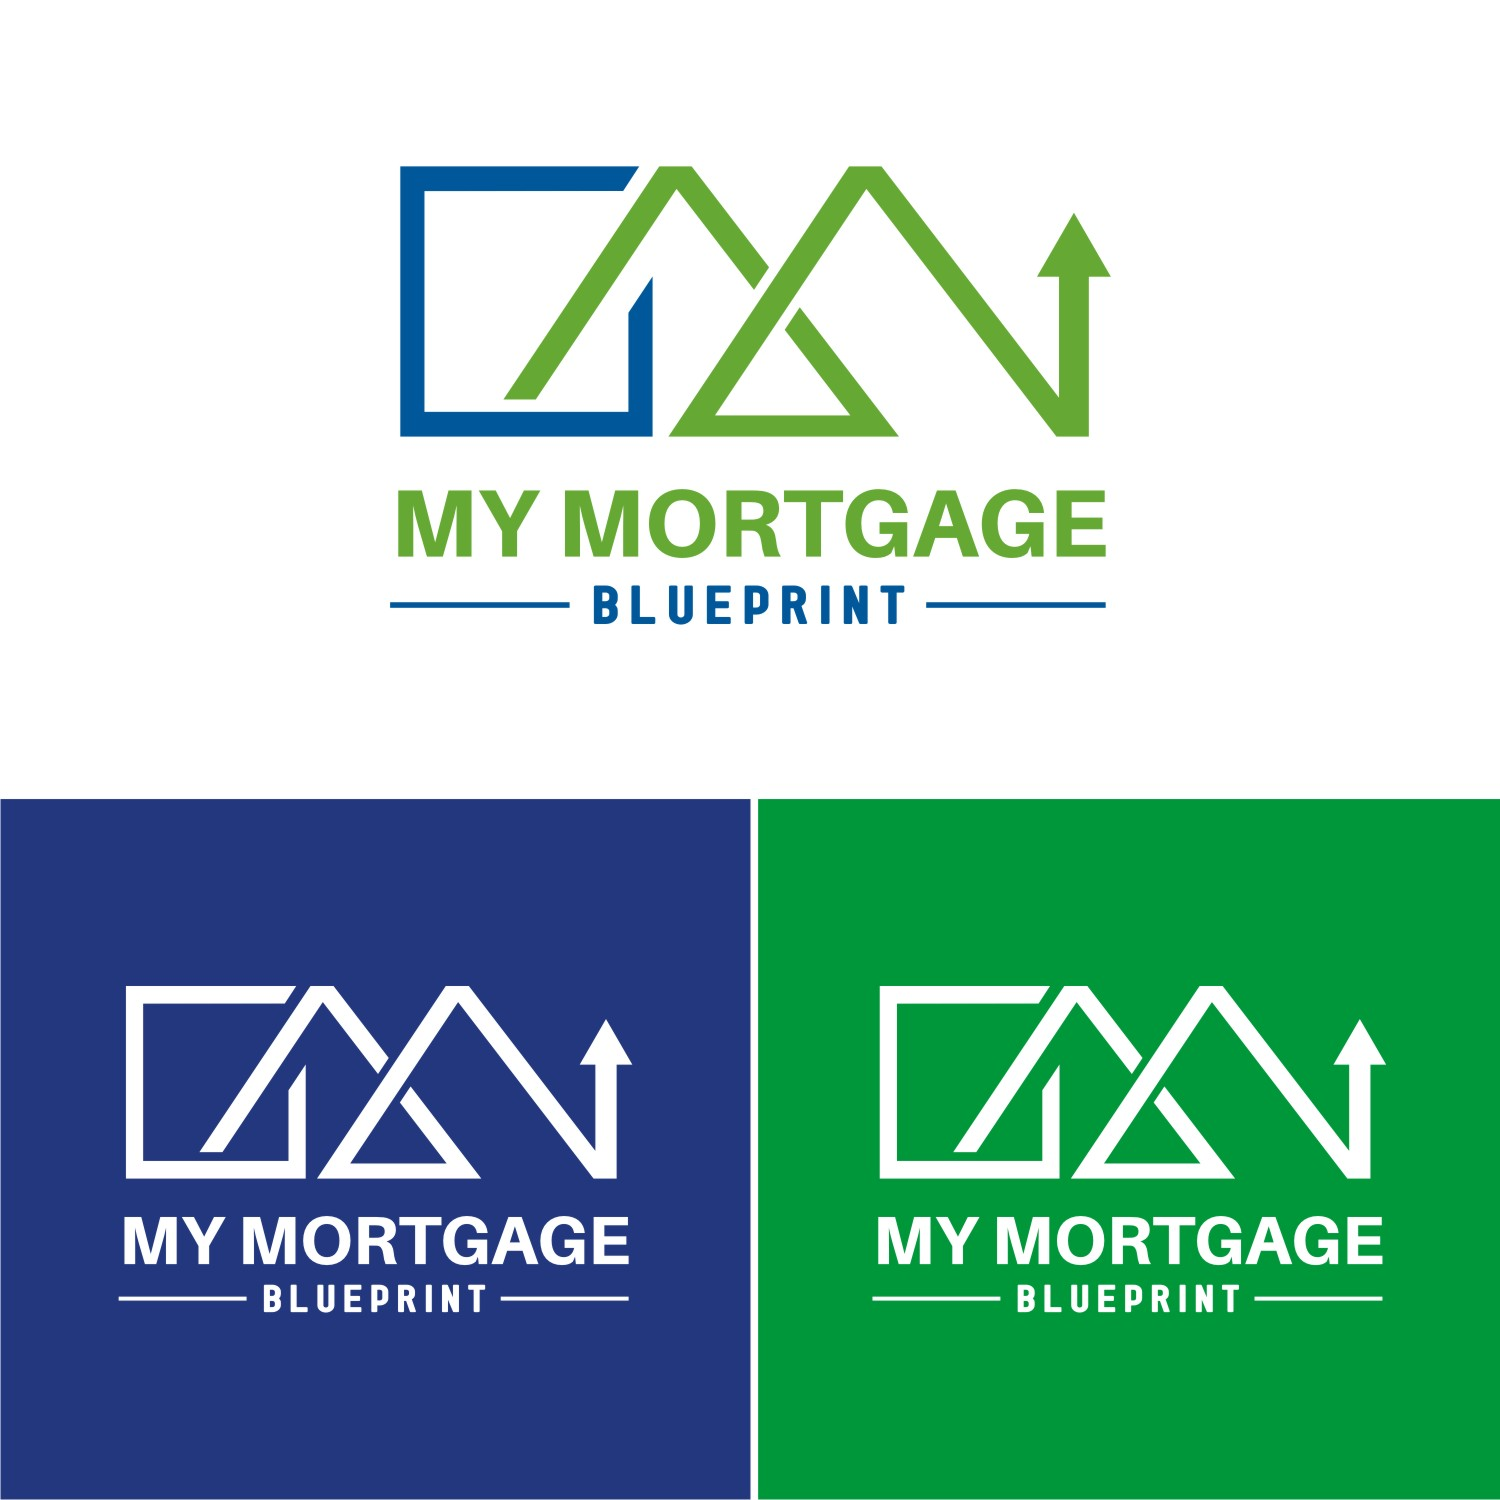 Professional bold logo design for my mortgage blueprint by logo design by ahsacomputer for my mortgage blueprint design 15548301 malvernweather Gallery